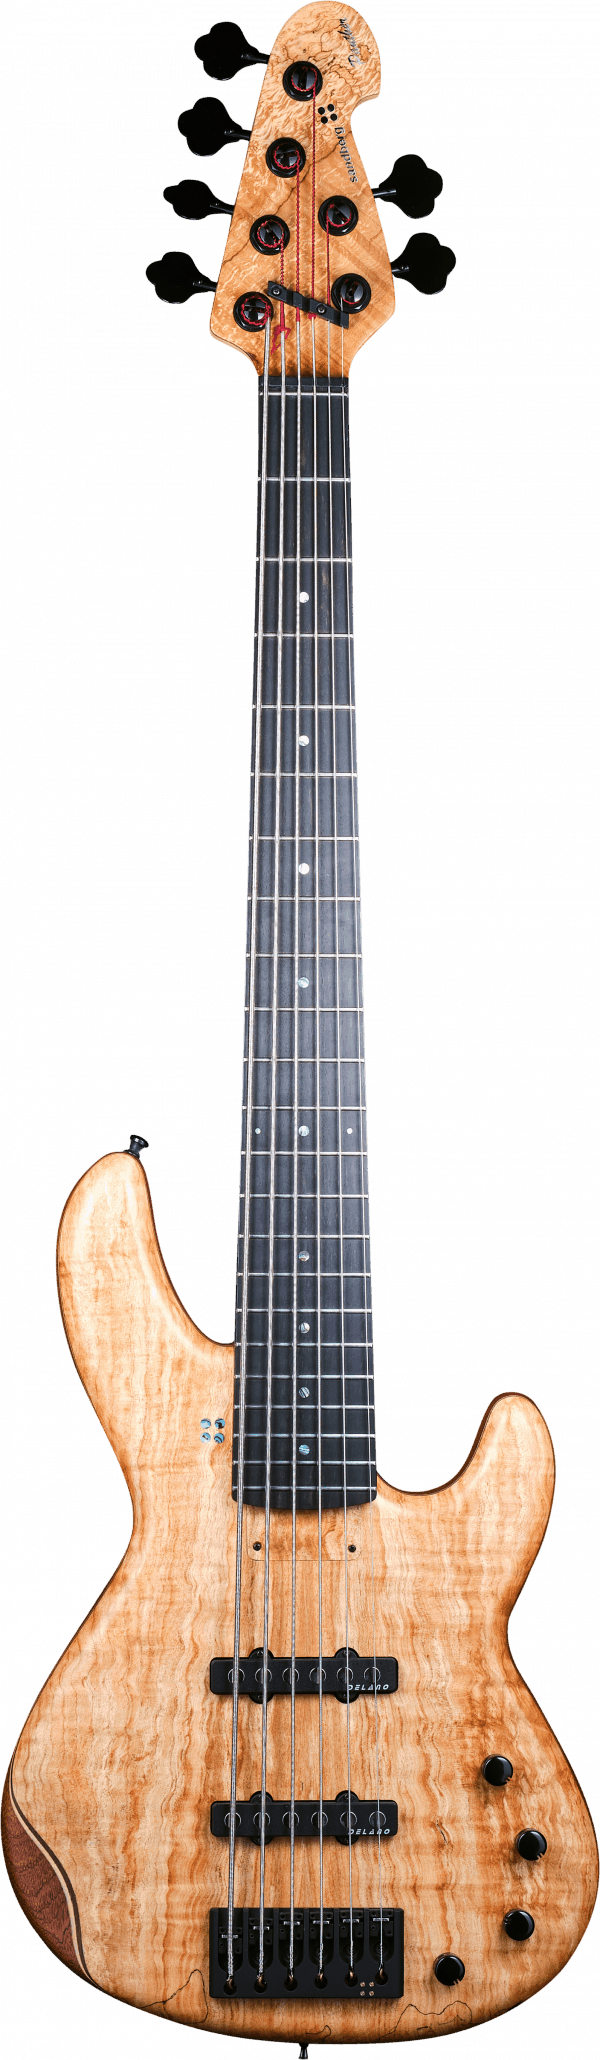 Sandberg Panther TT6 Spalted Maple